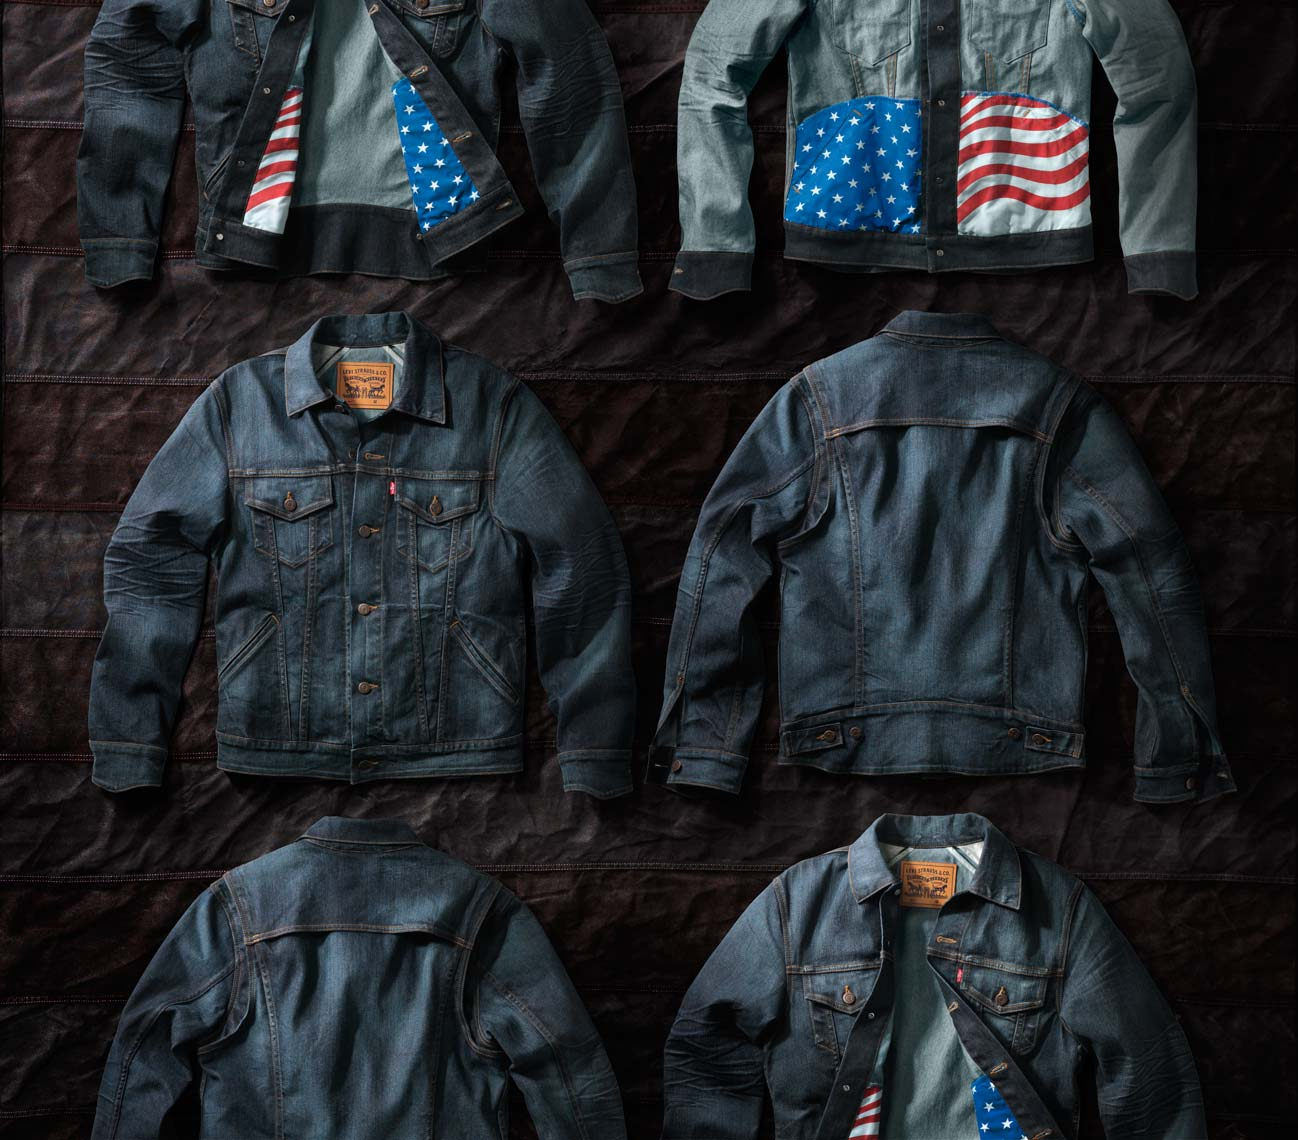 levis denim jackets an old american flag